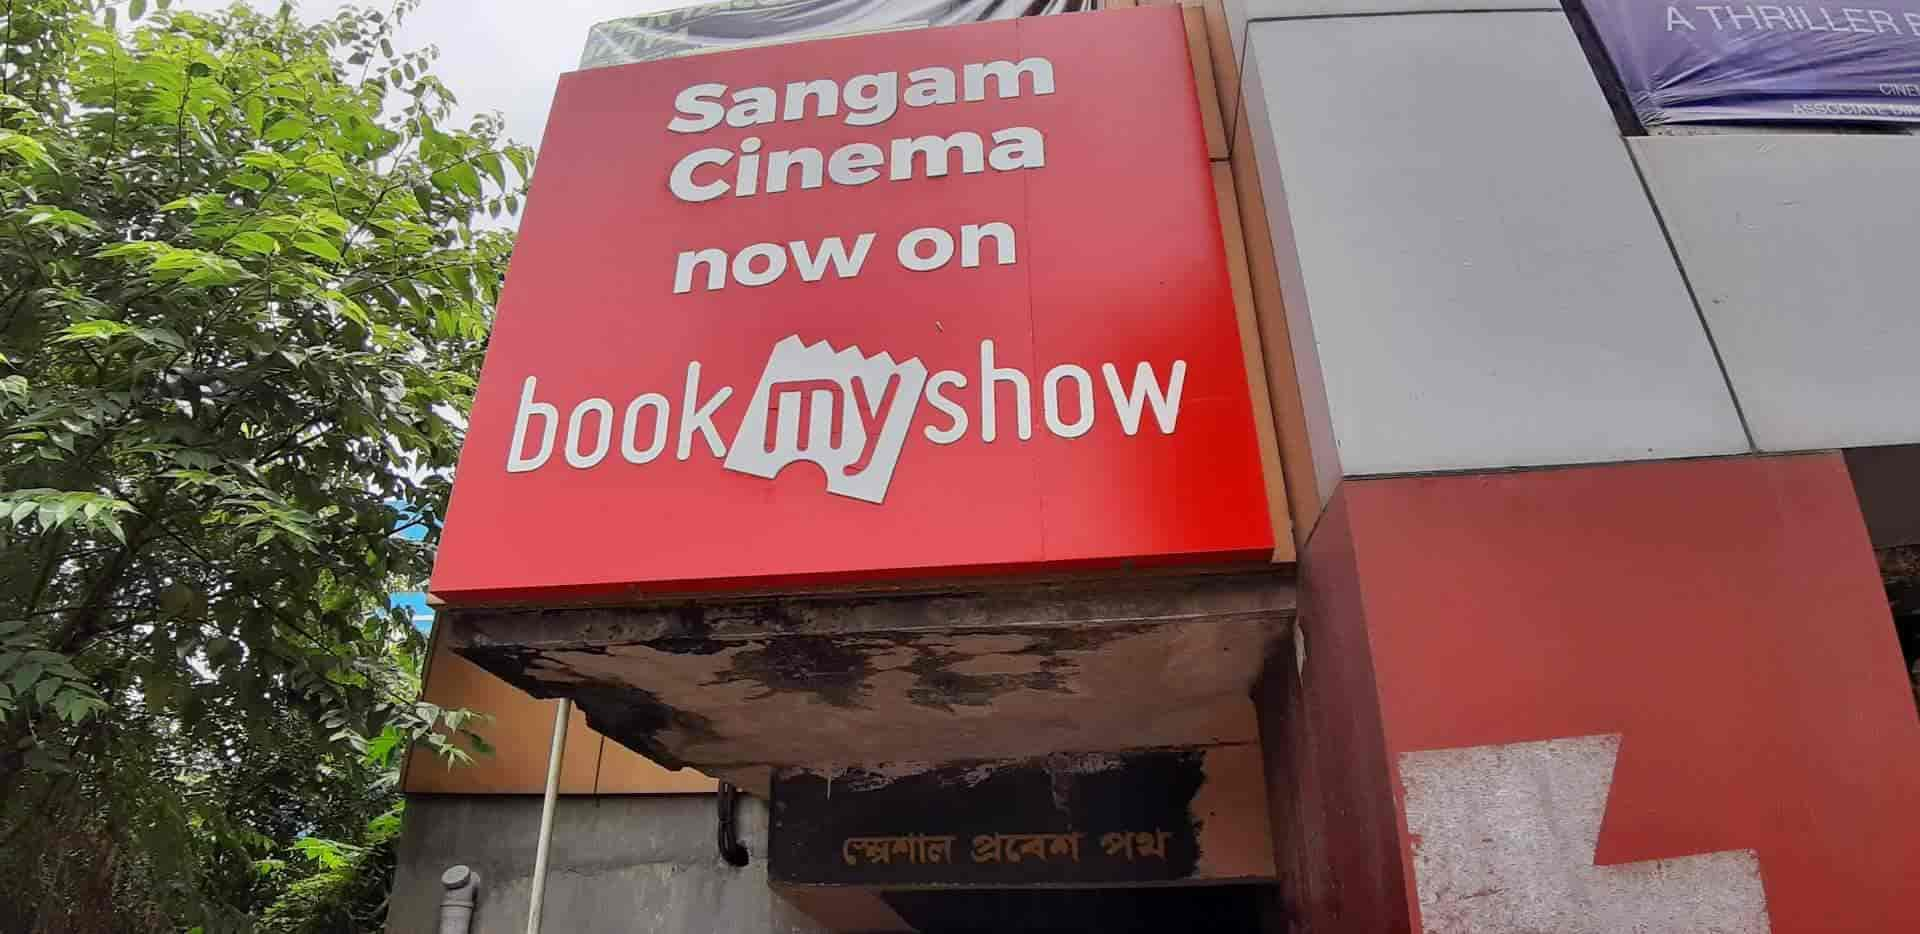 Sangam Cinema Hall, Kalyani Ho - Cinema Halls in Kalyani - Justdial